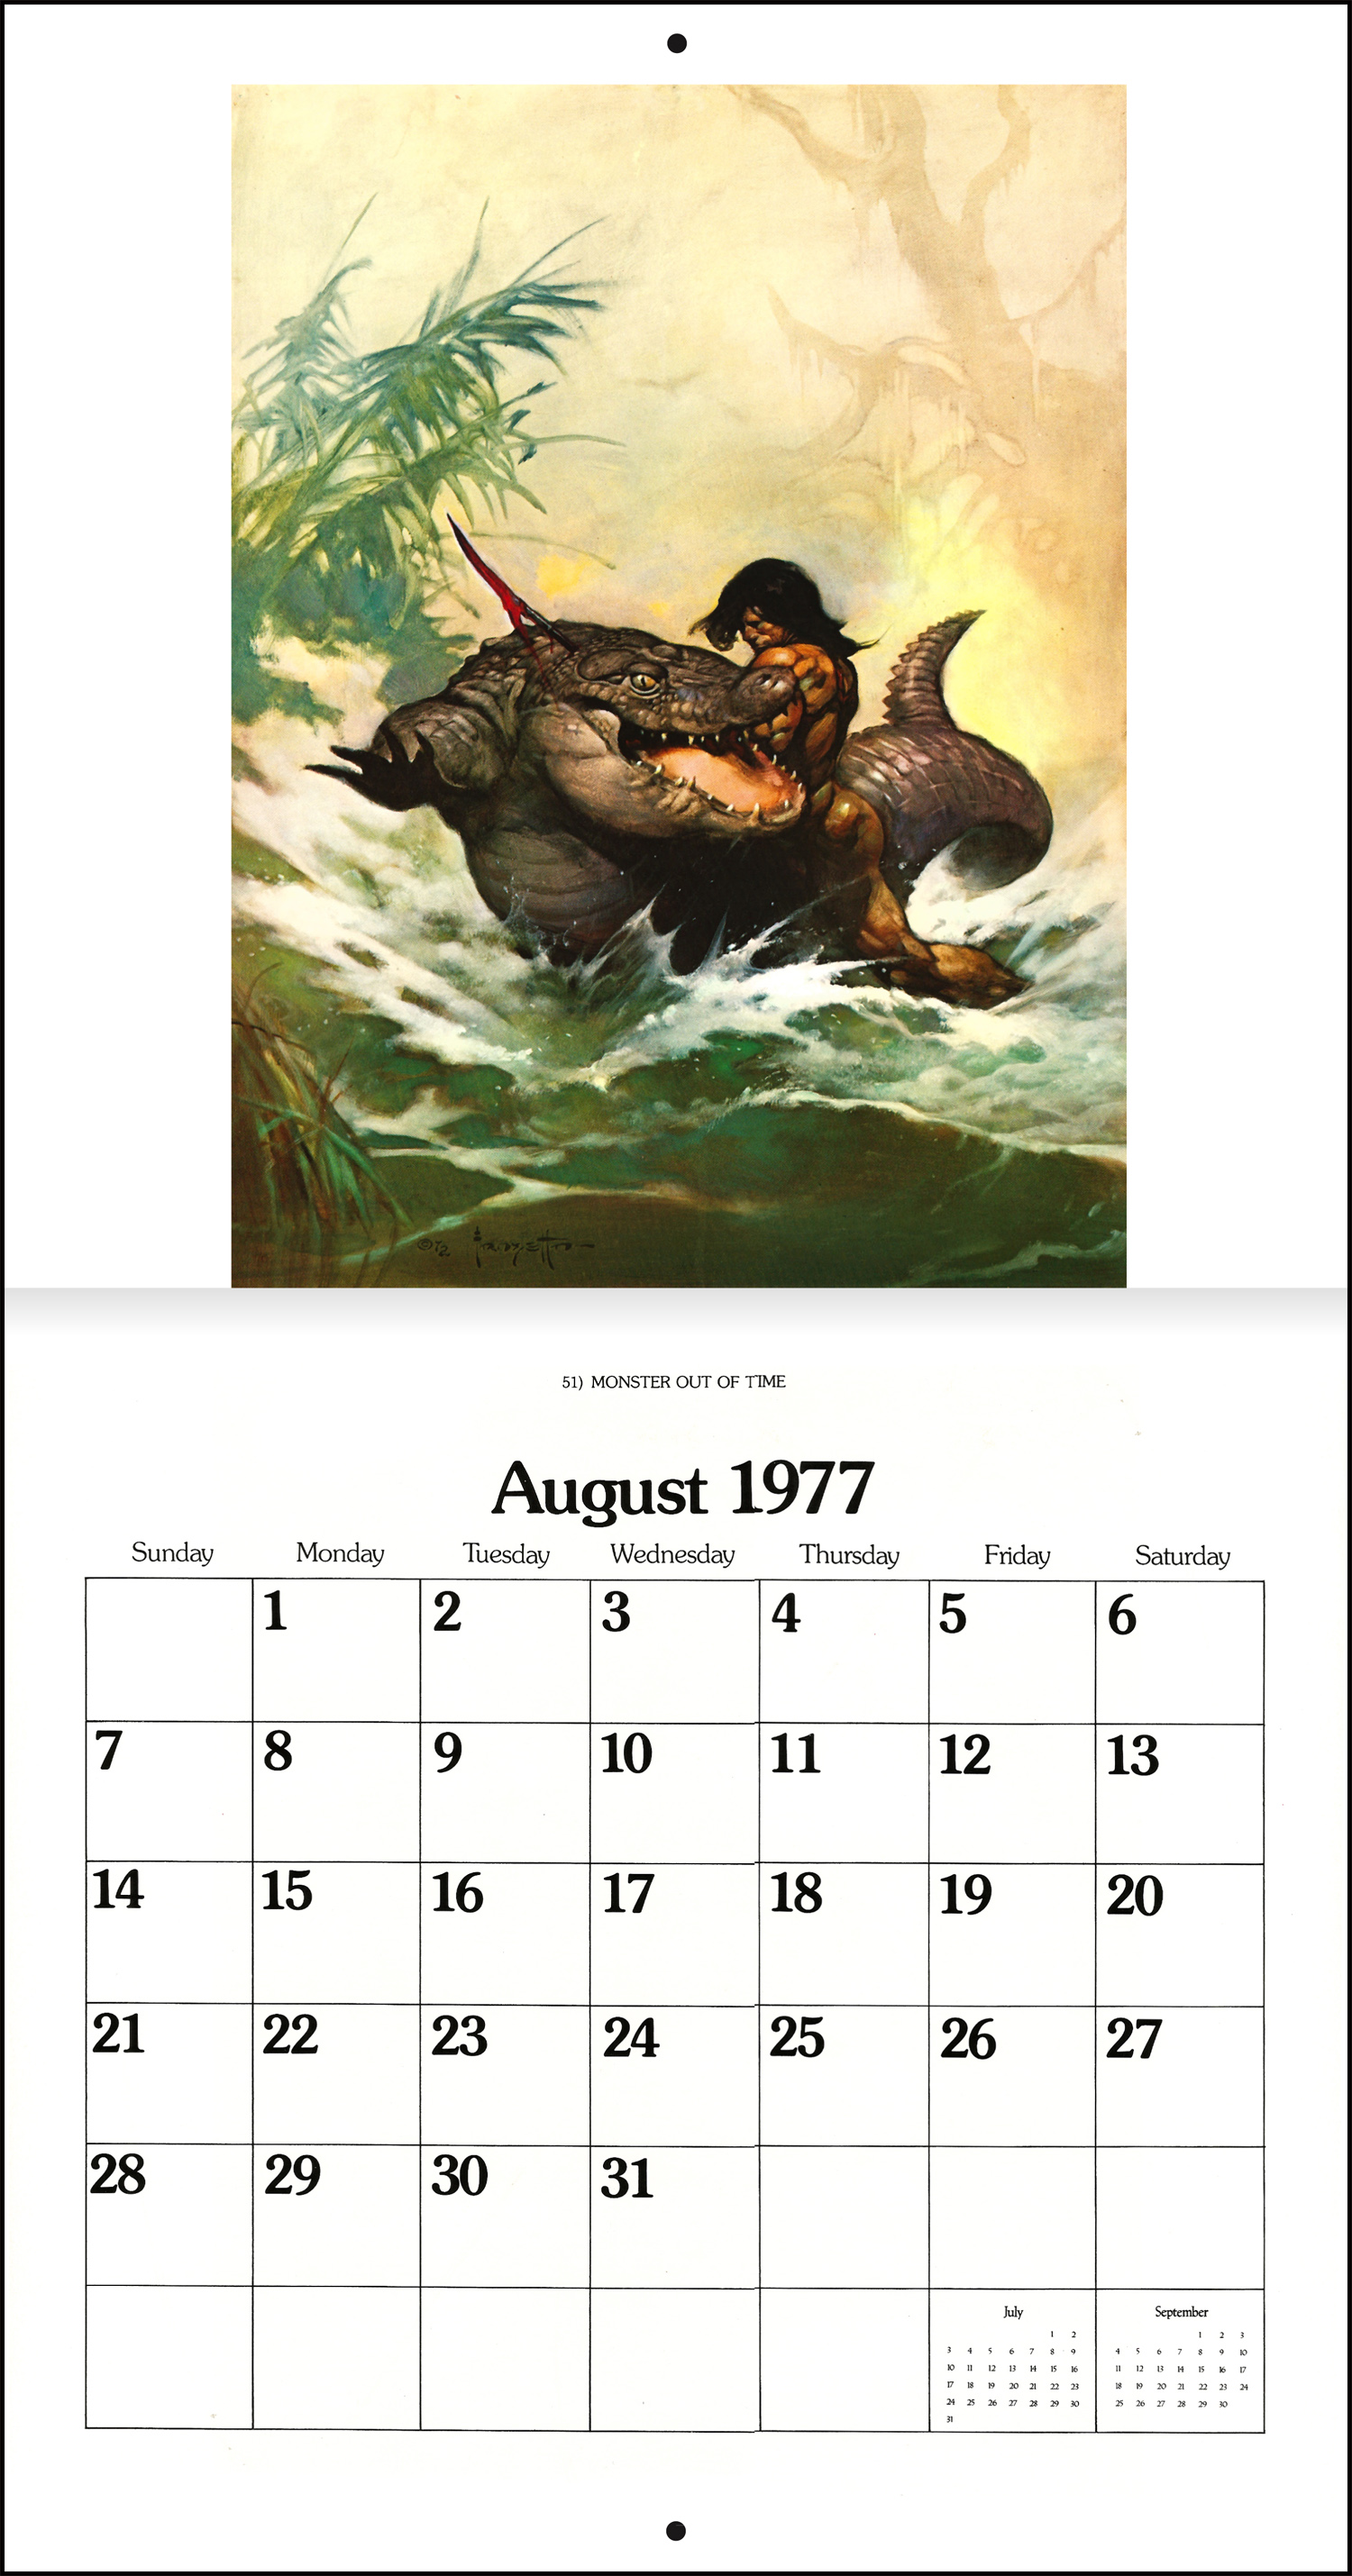 1979 Calendar August.The Frank Frazetta Calendar 1977 Tain T The Meat It S The Humanity